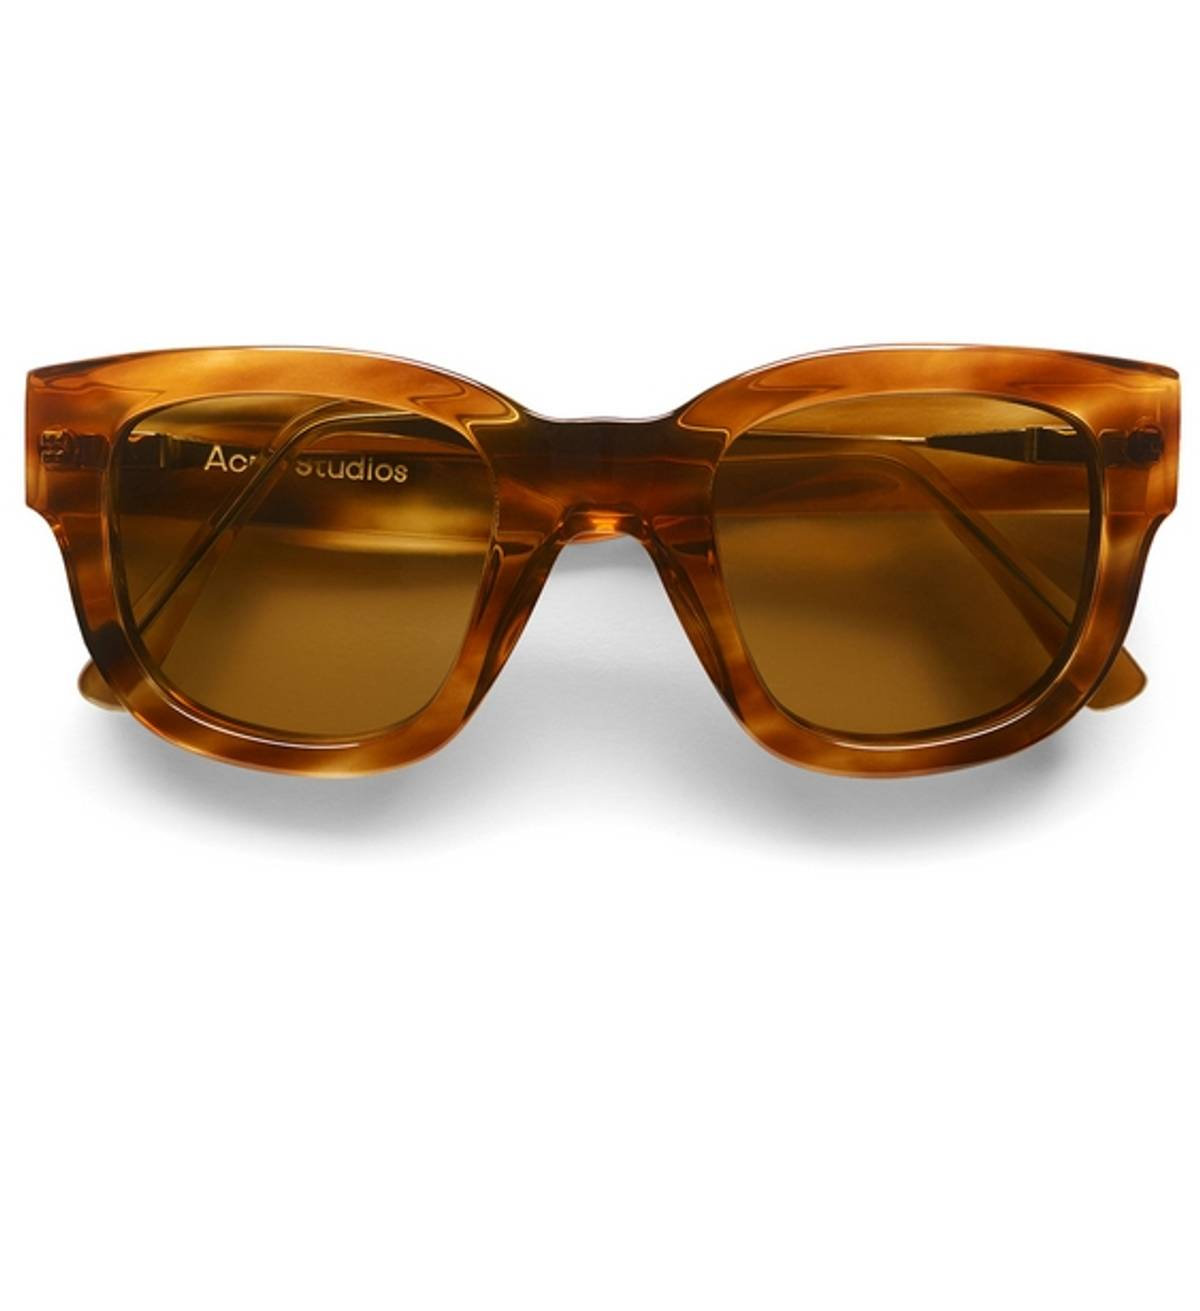 390a502522 Acne Studios Frame Light Turtle Size one size - for Sale - Grailed